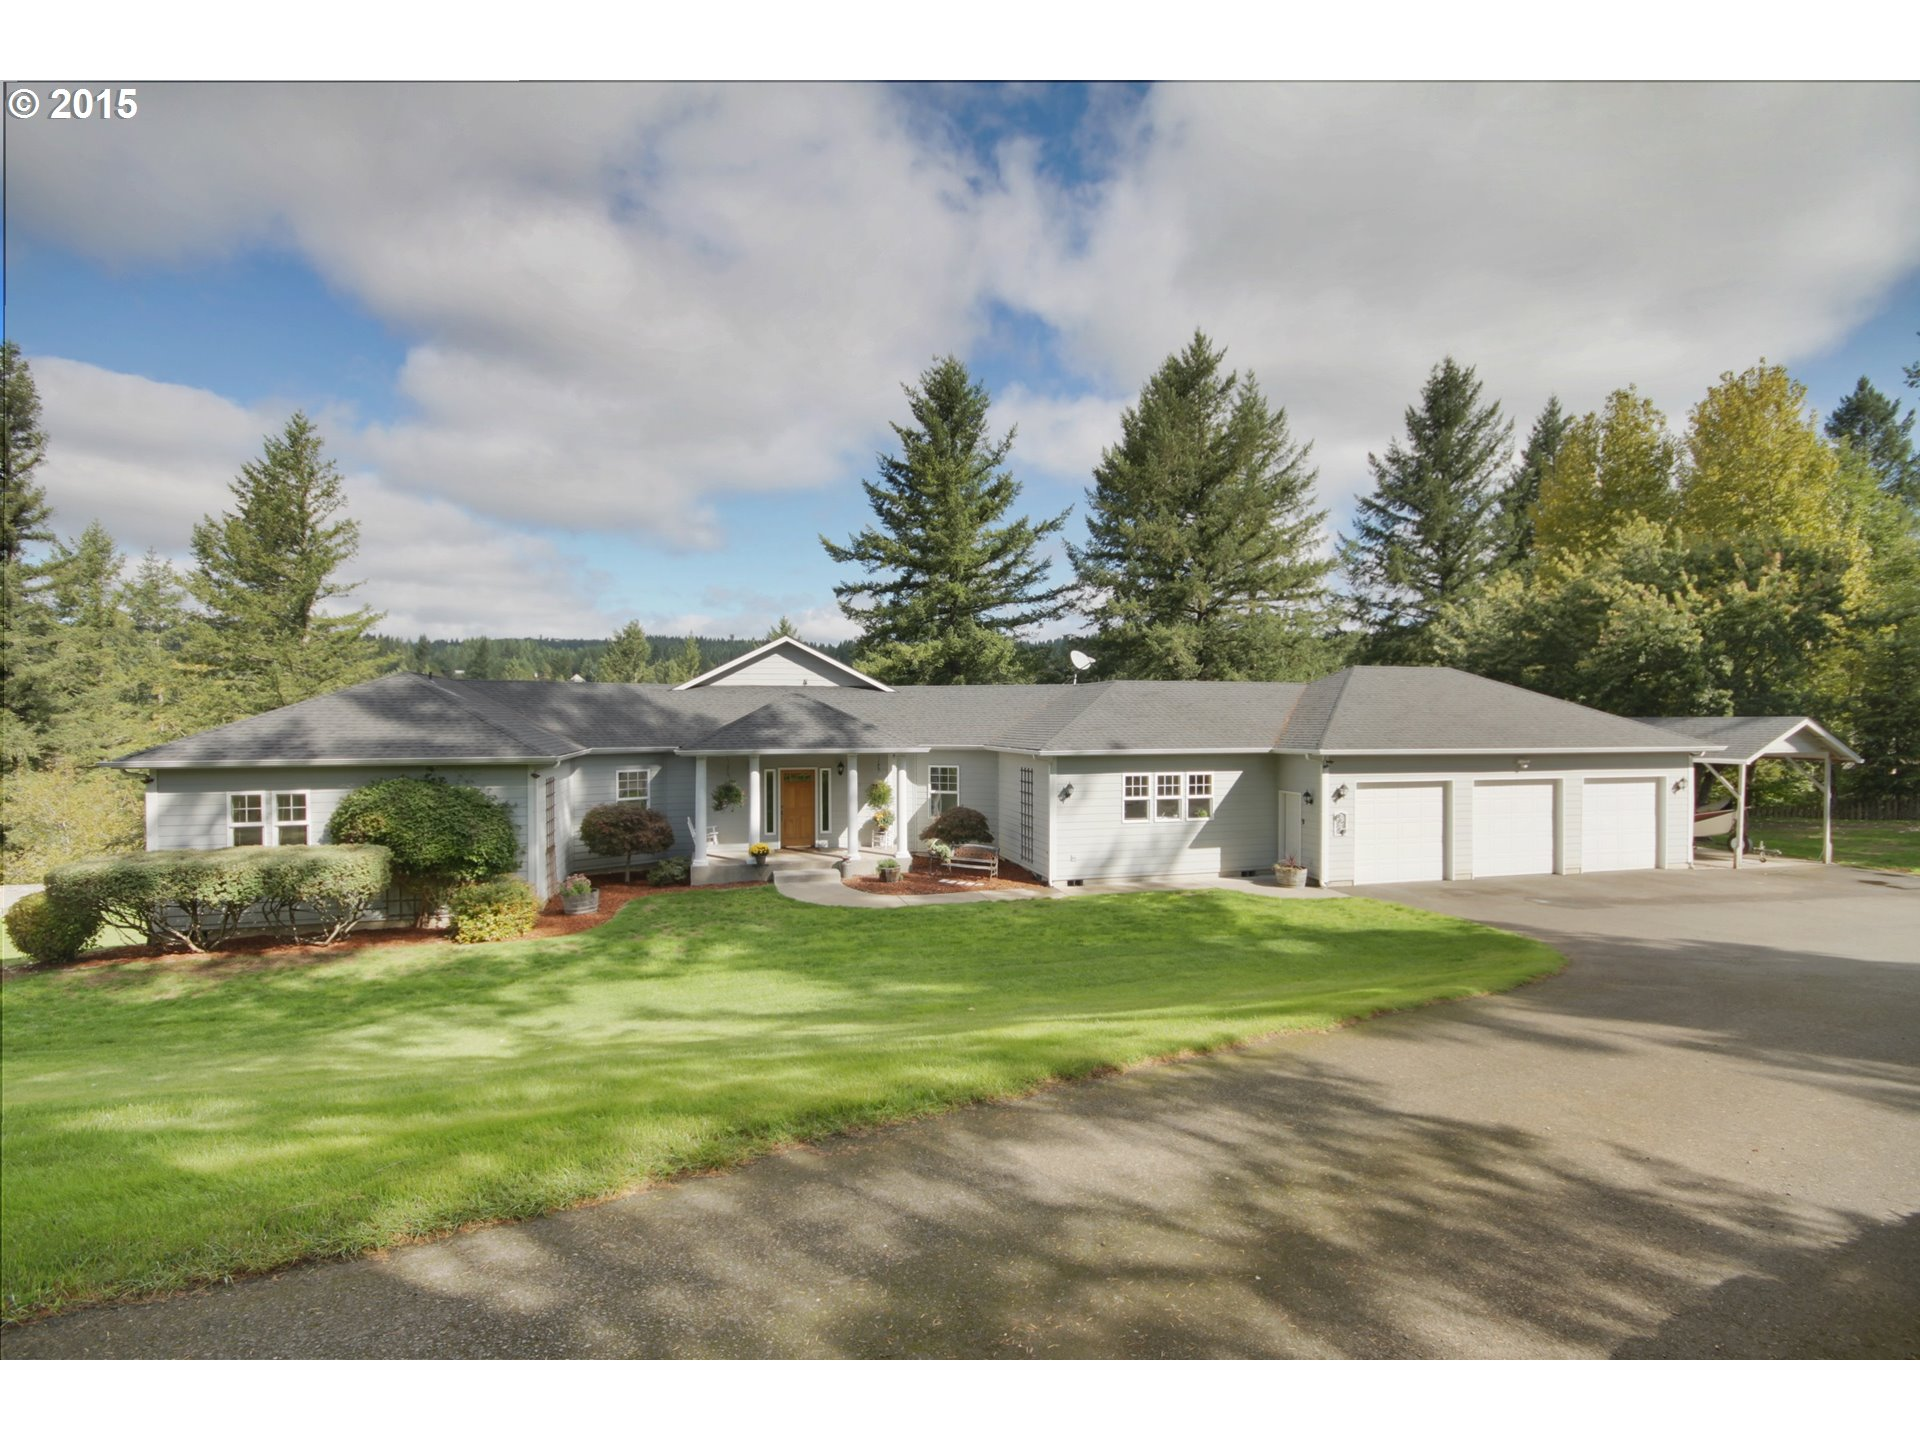 32000 SE 6th Cir, Washougal, WA